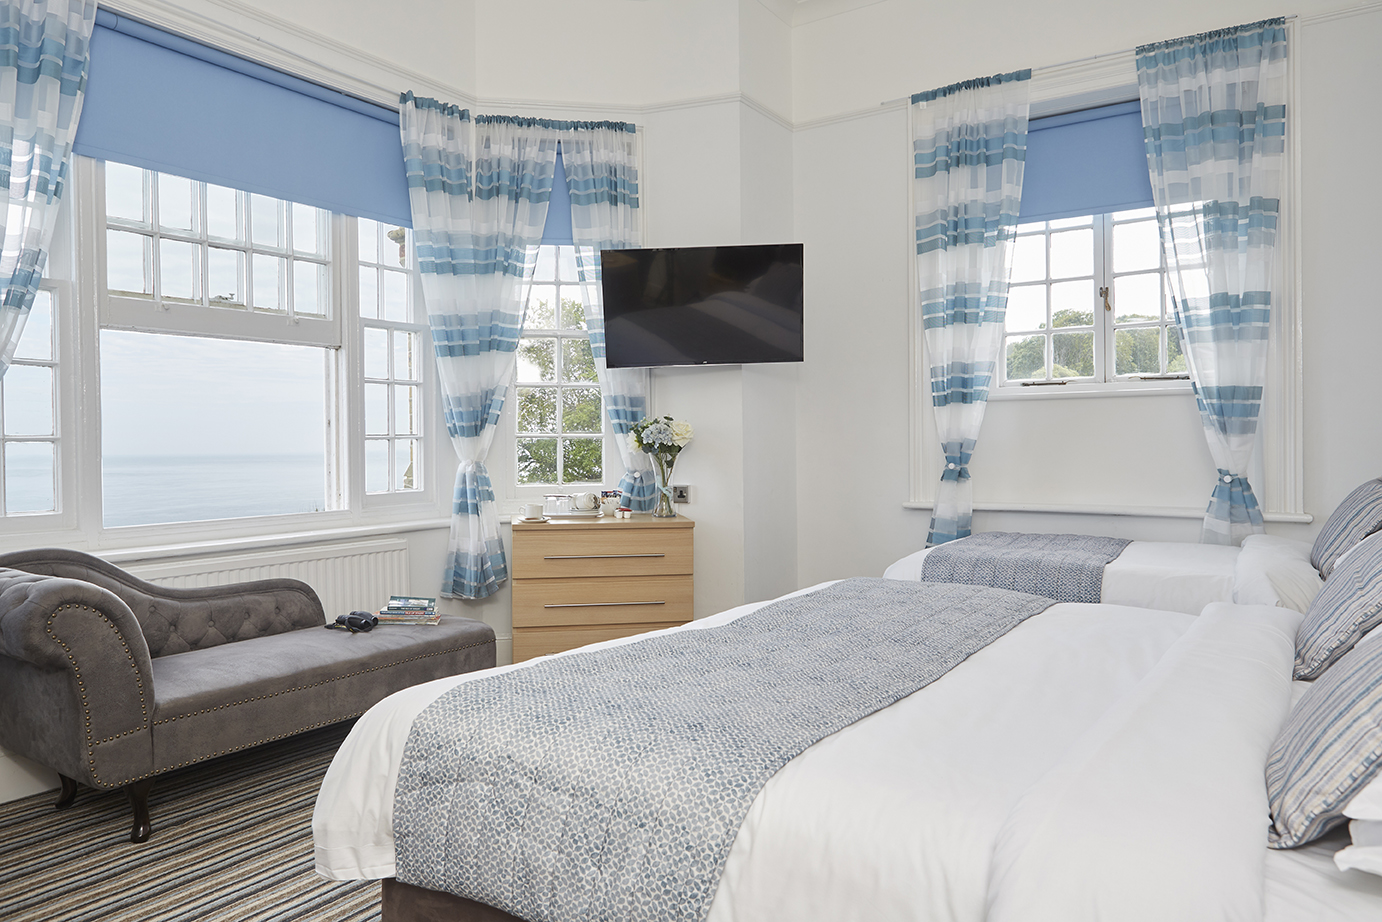 Luccombe Manor Country House Hotel, Sea View Bedroom, Isle of Wight